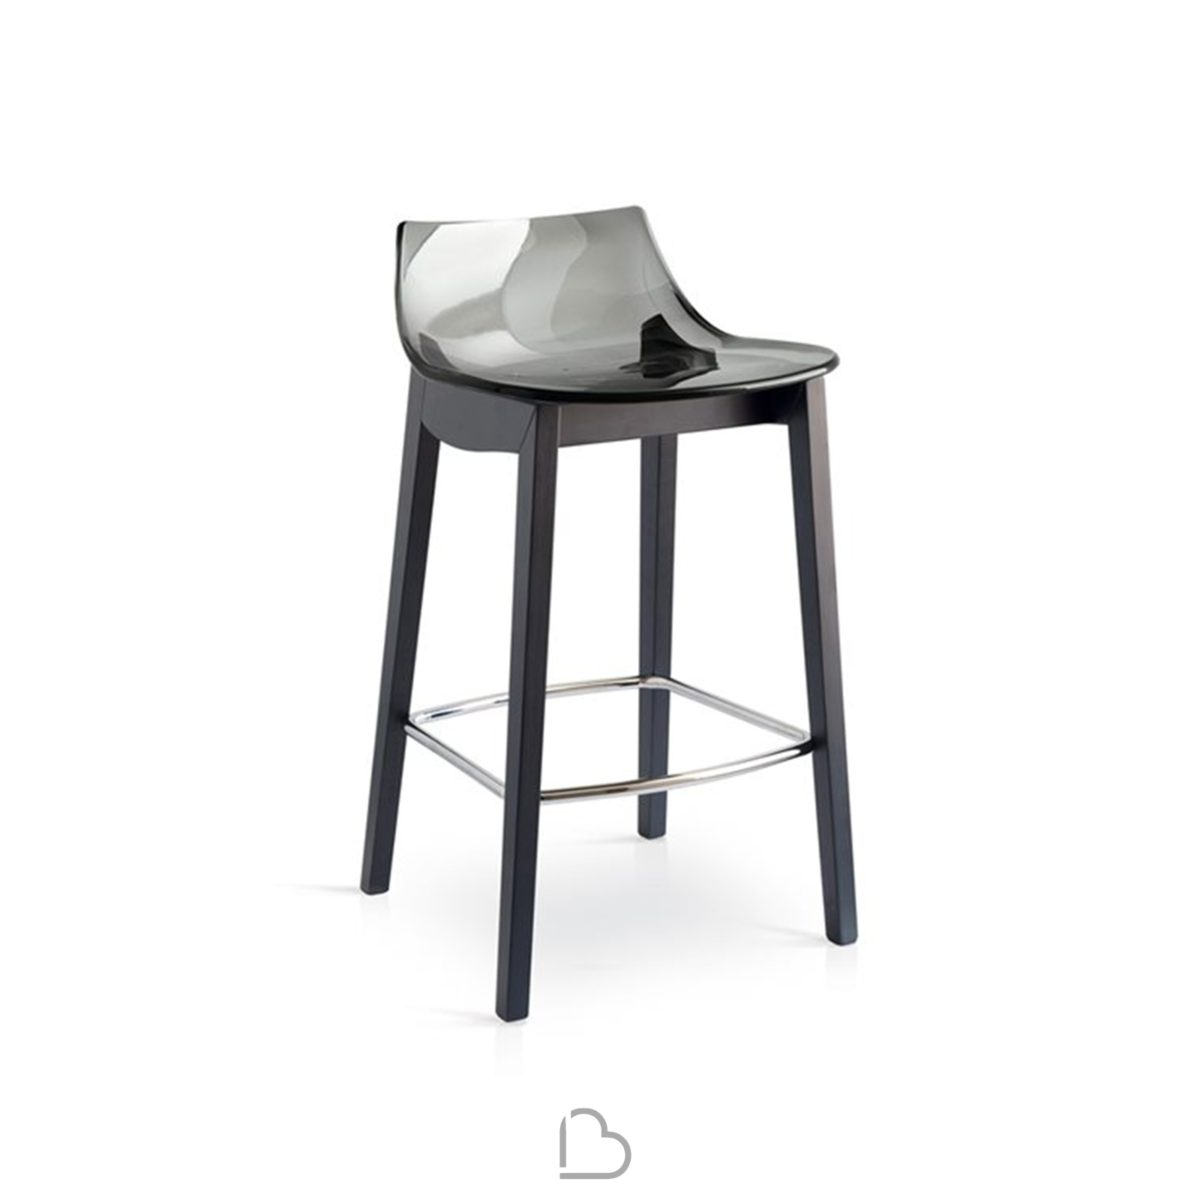 stool connubia calligaris led w cb1541 1200x1200 - Scaun pentru bar Led W CONNUBIA (CB/1541)